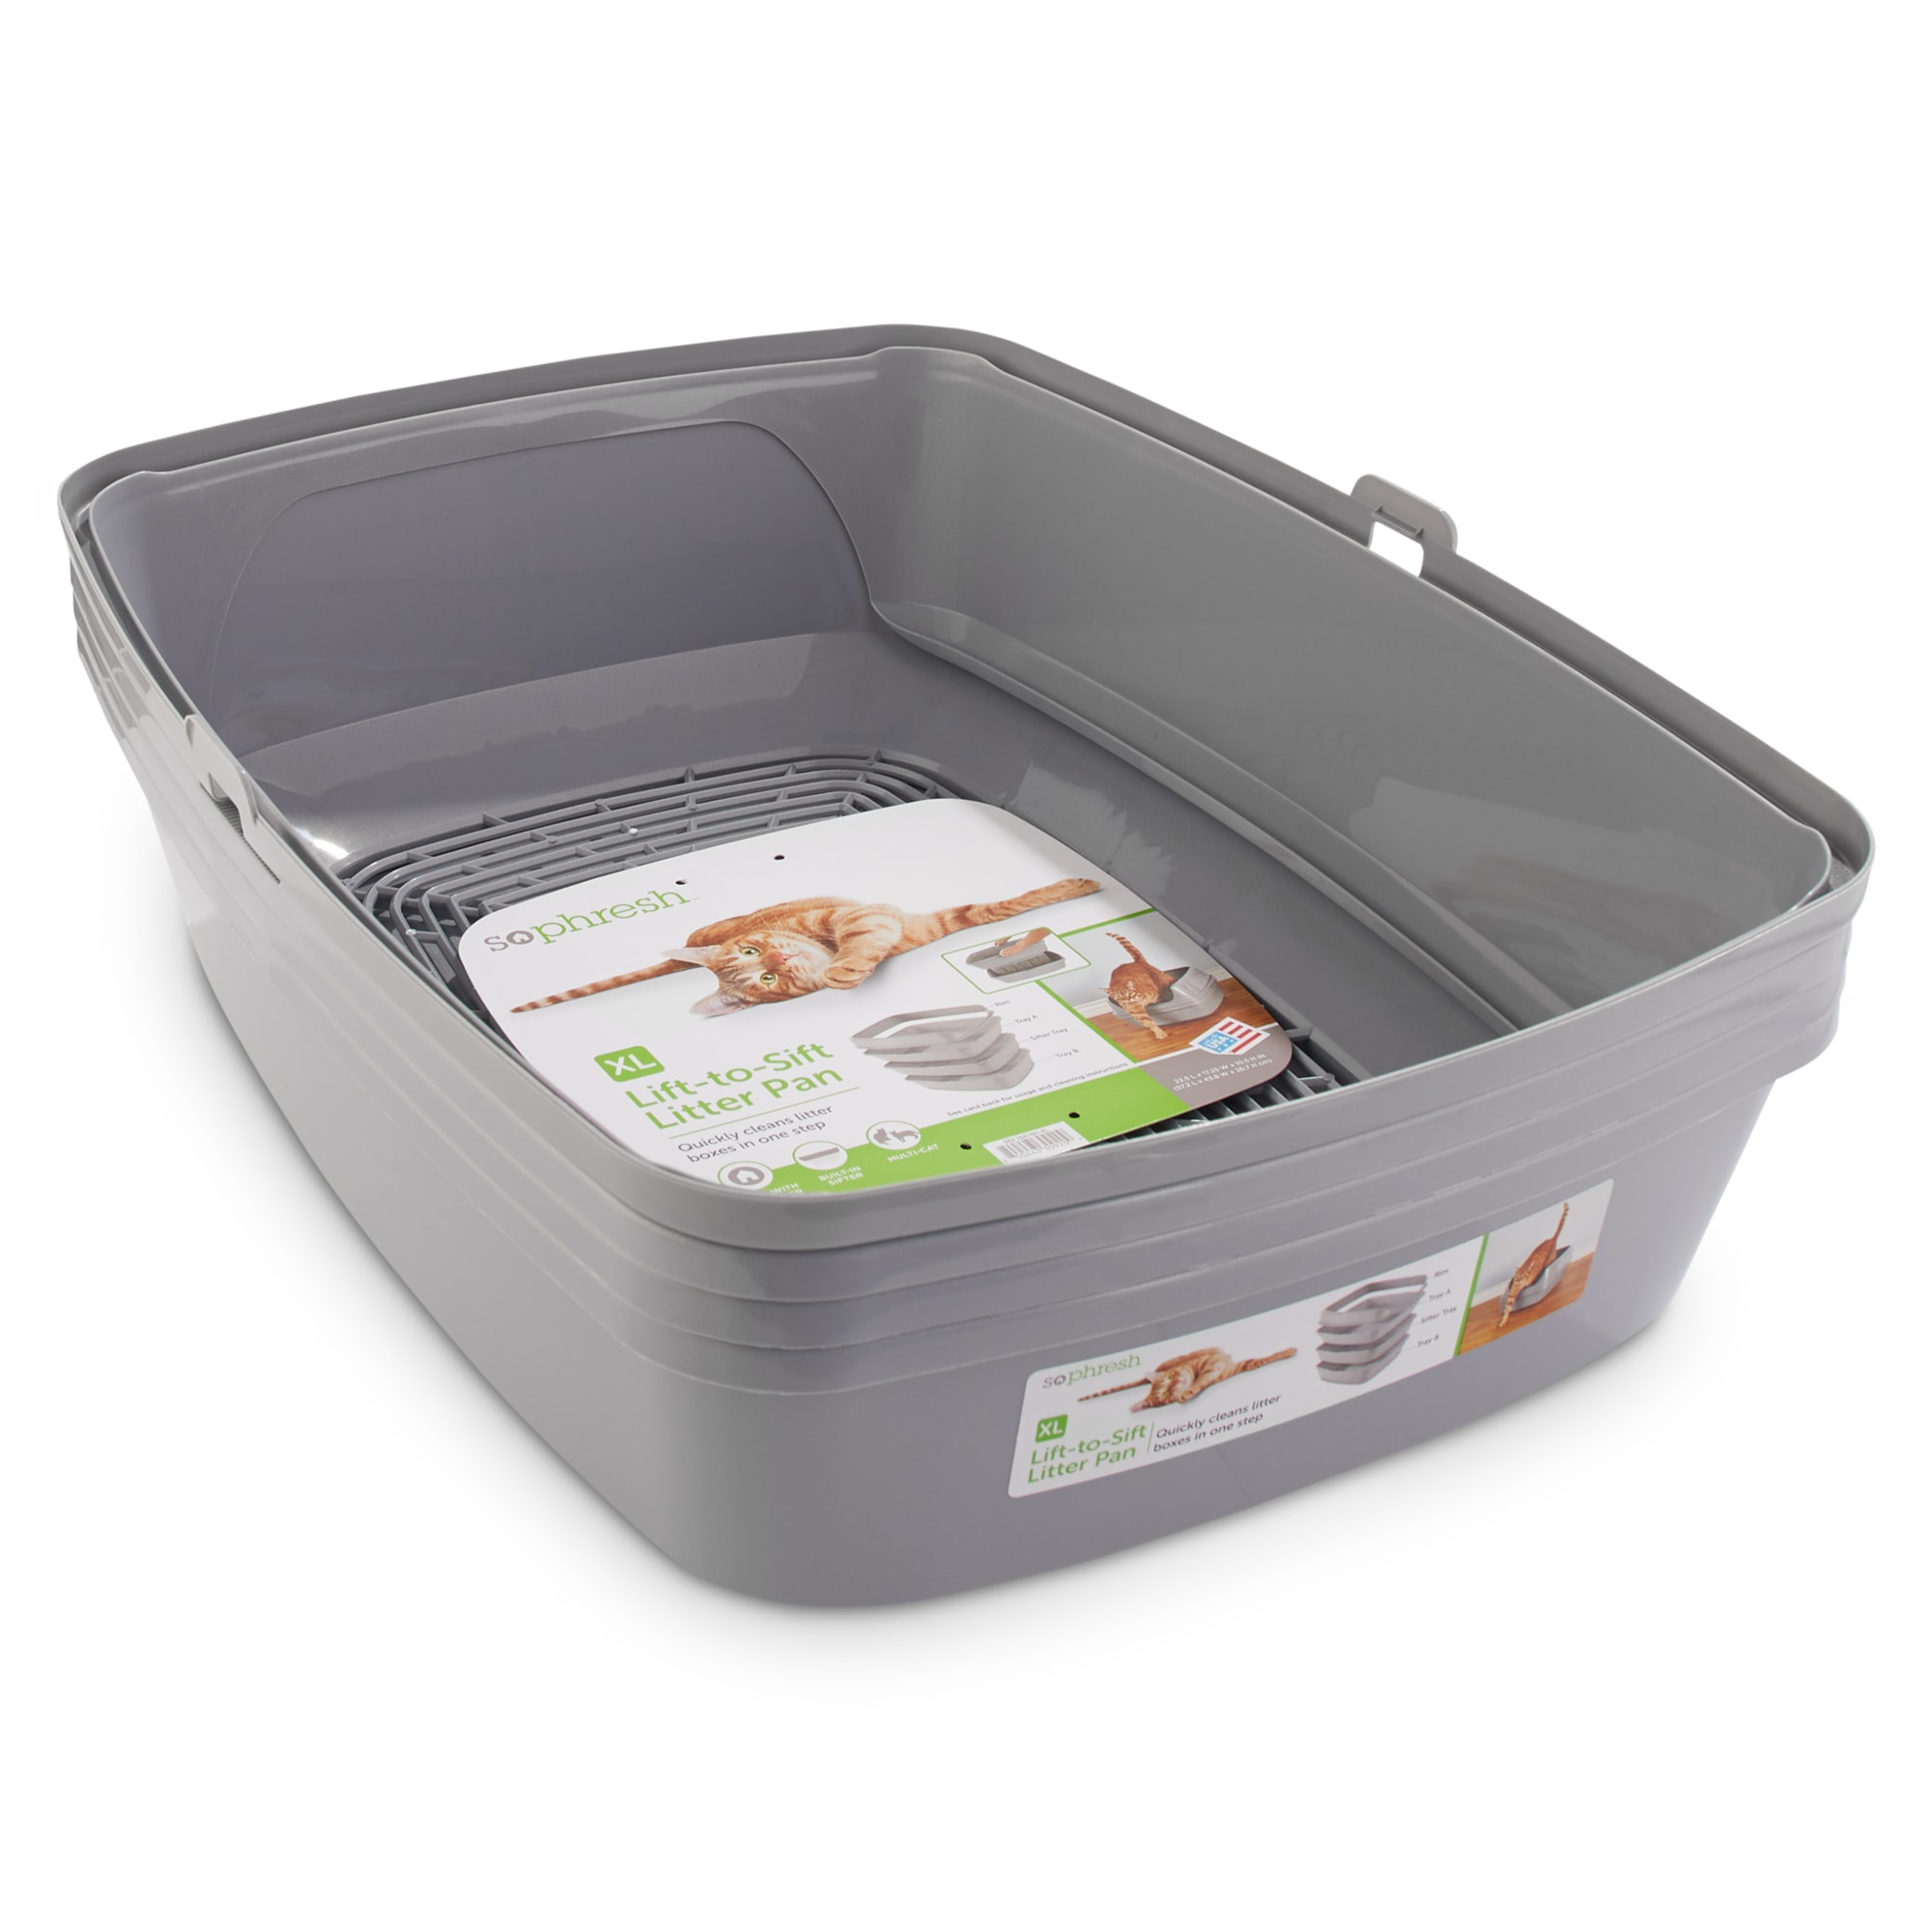 So Phresh Lift To Sift Cat Litter Pan 22 5 L X 17 25 W X 10 5 H Petco